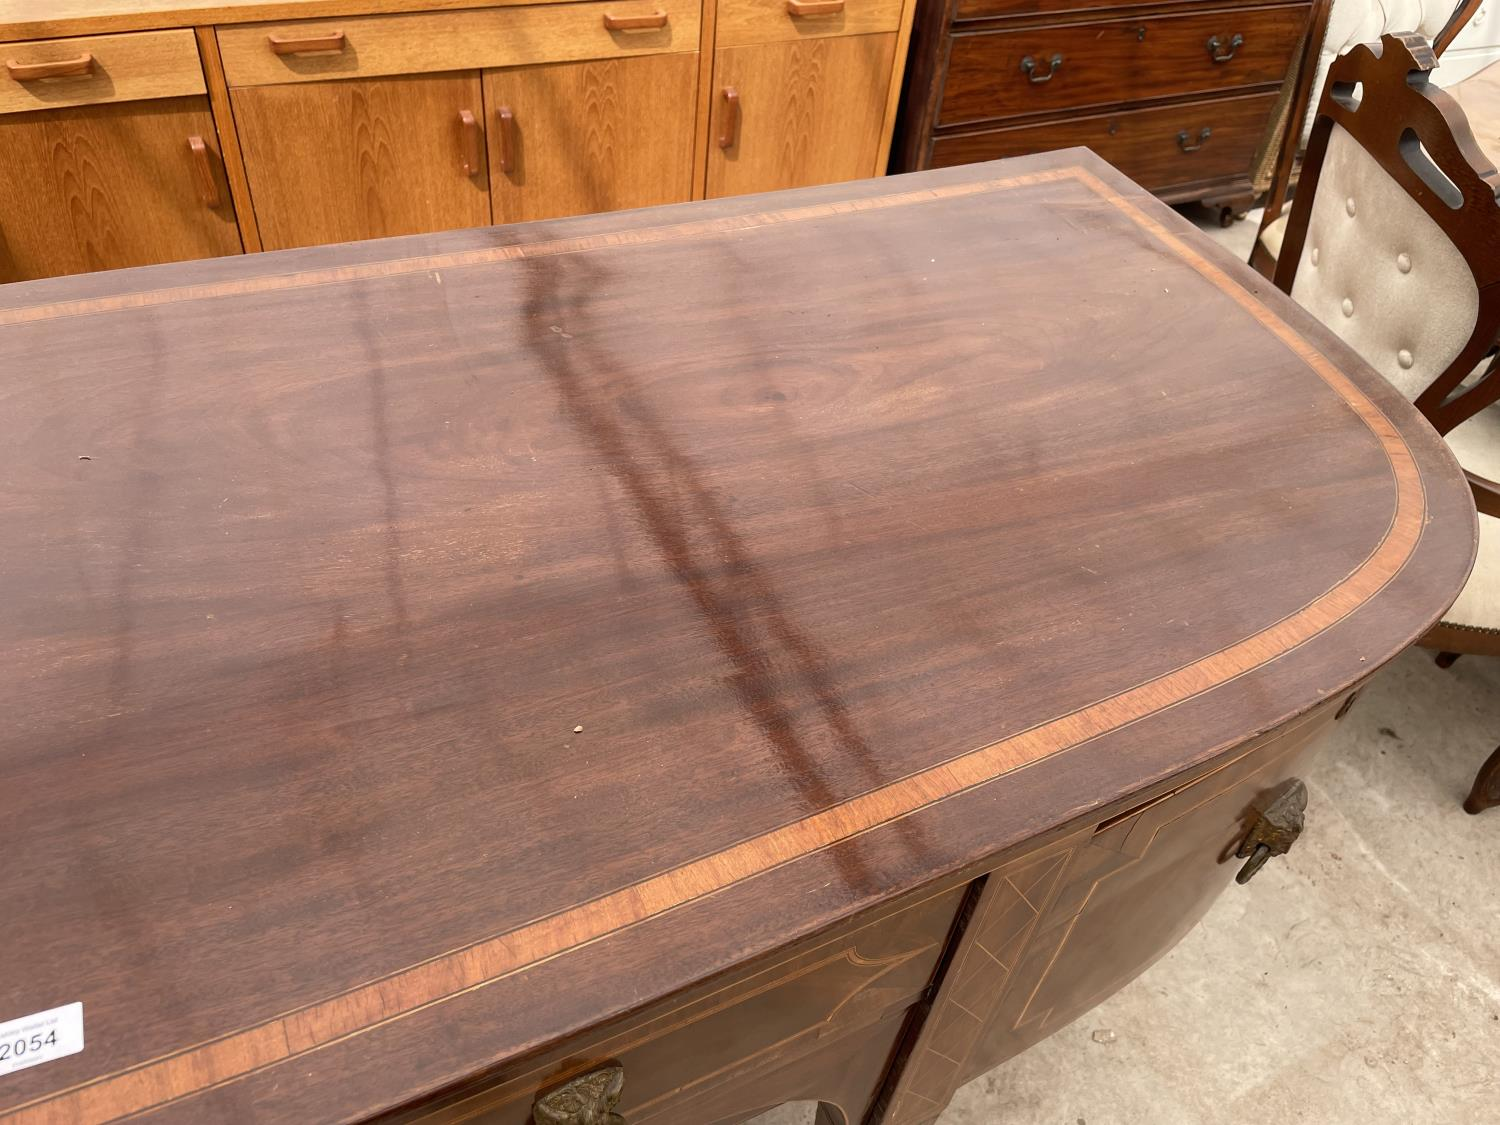 """A 19TH CENTURY MAHOGANY BOWFRONTED SIDEBOARD ON TAPERED LEGS, WITH SPADE FEET, 78"""" - Image 3 of 10"""